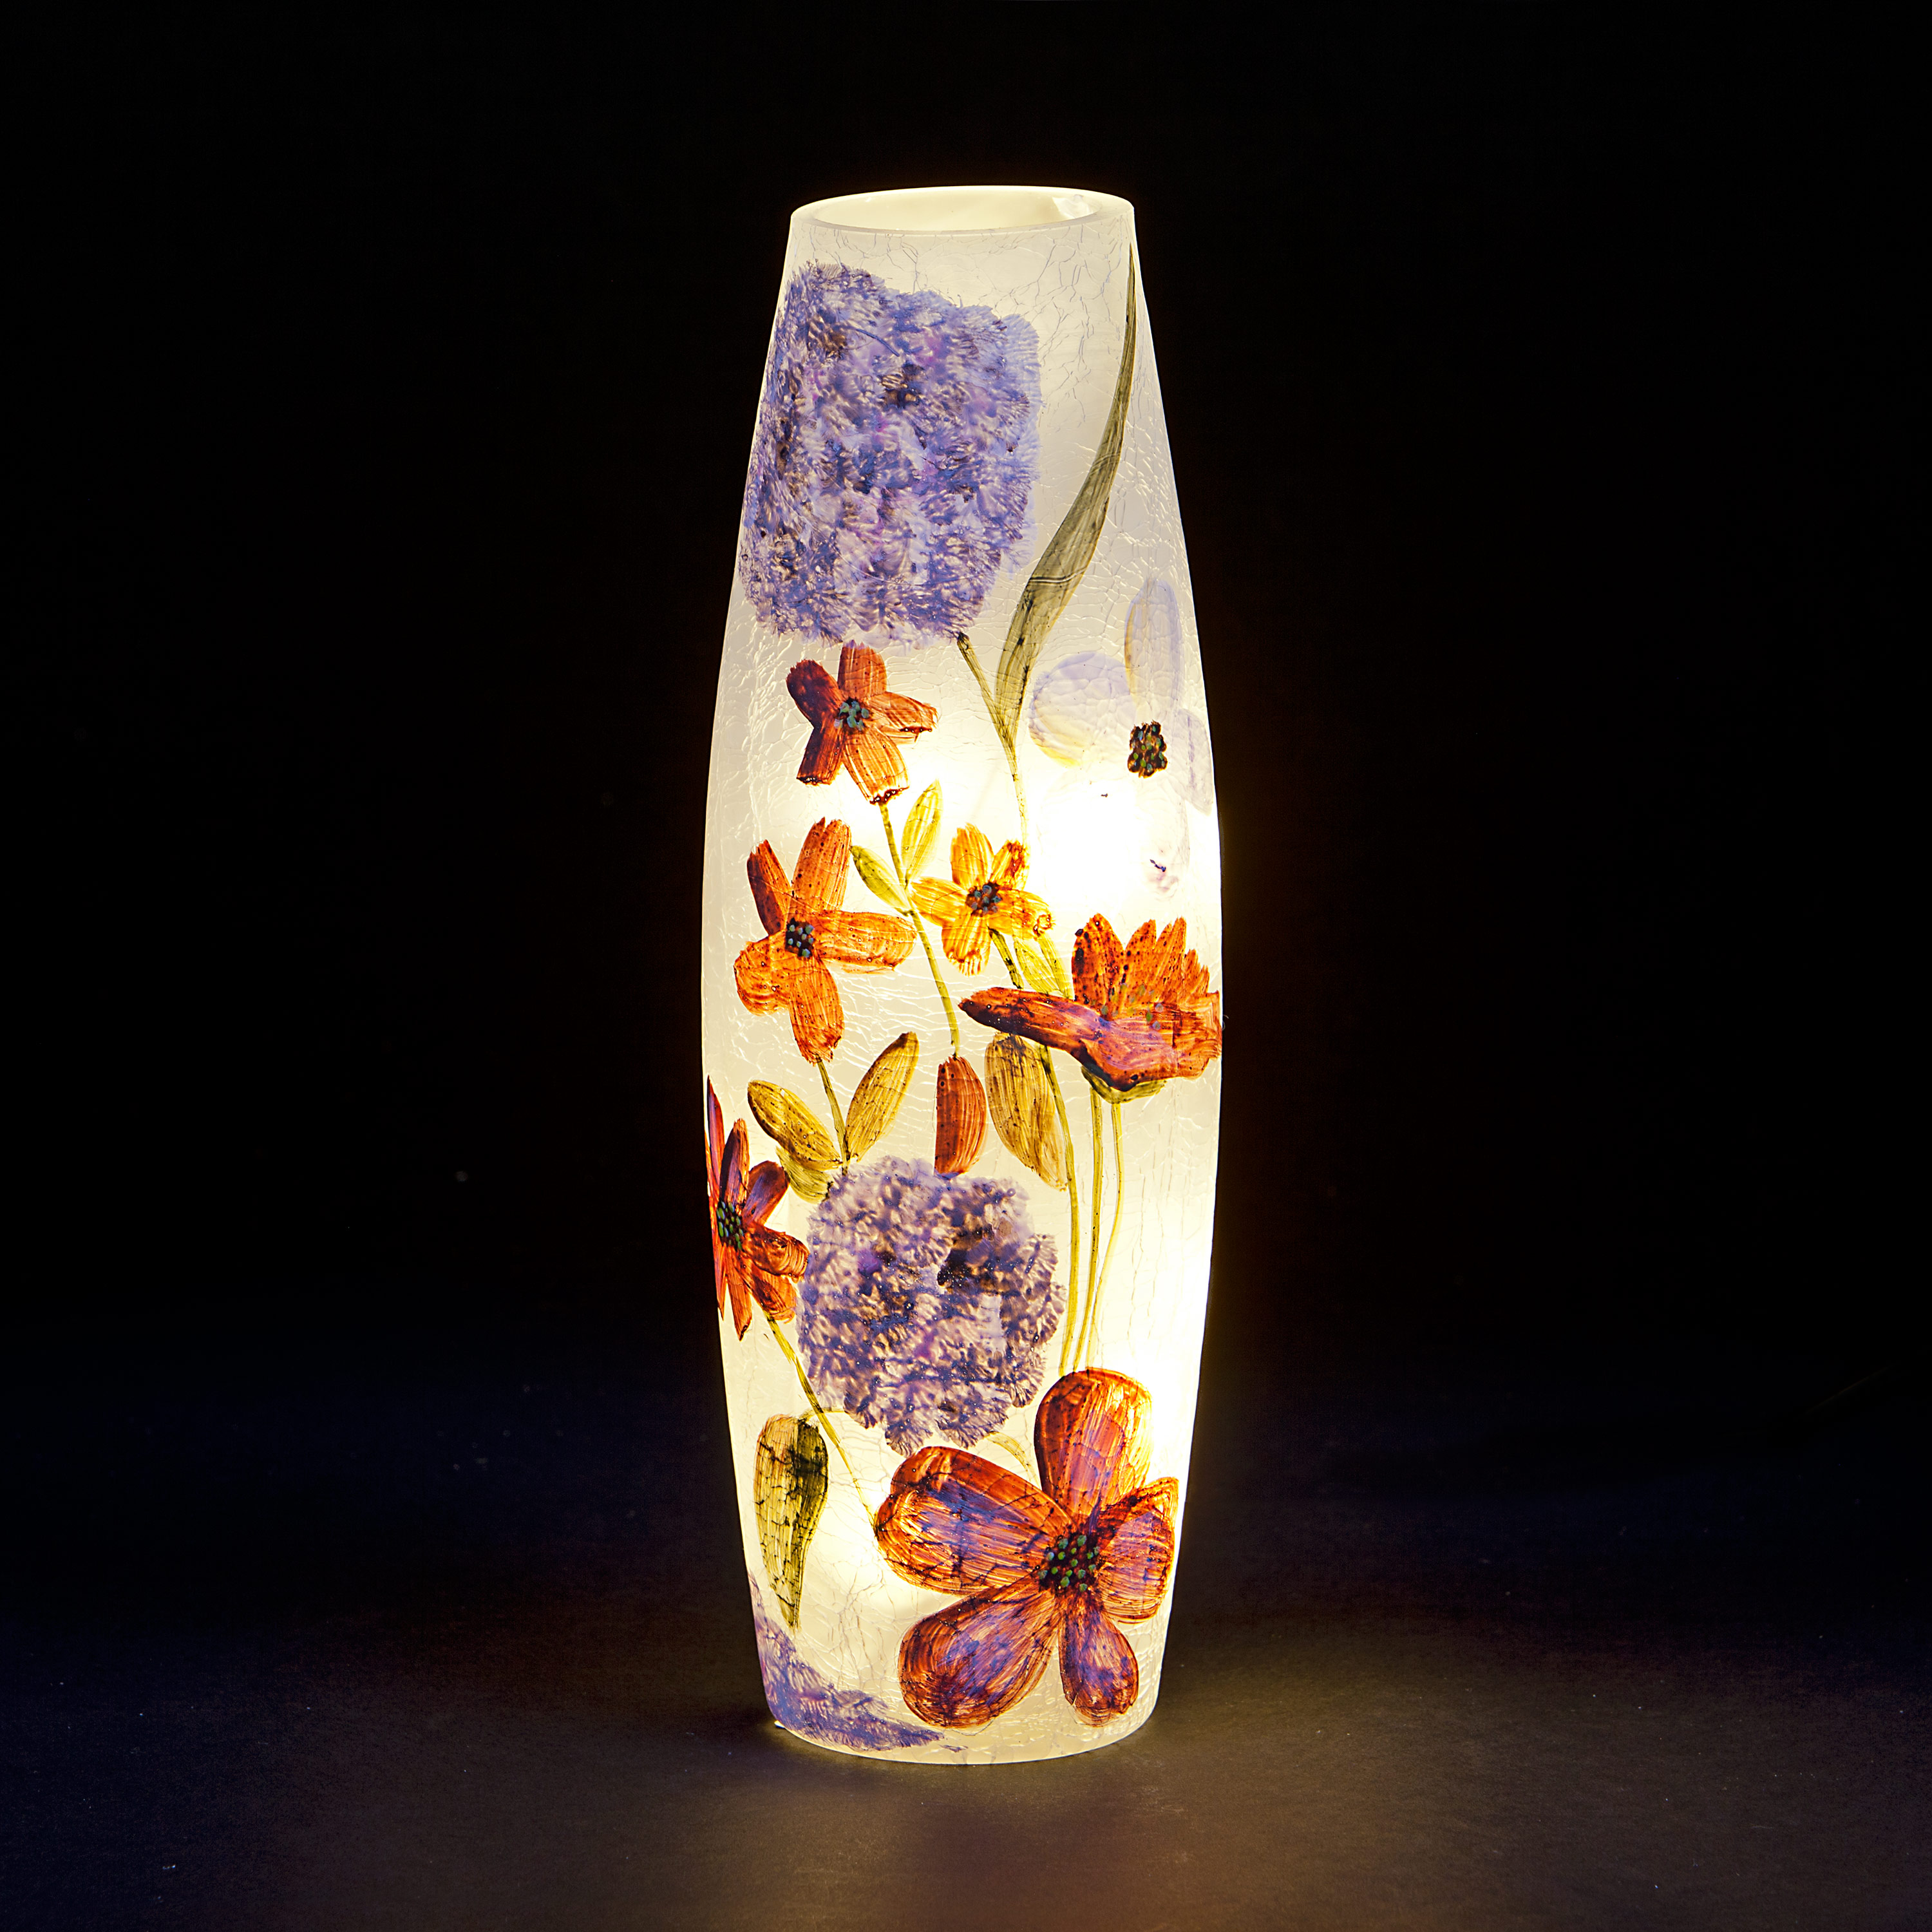 Pre-Lit Glass Vase with Large Lilac Pressed Flowers Design